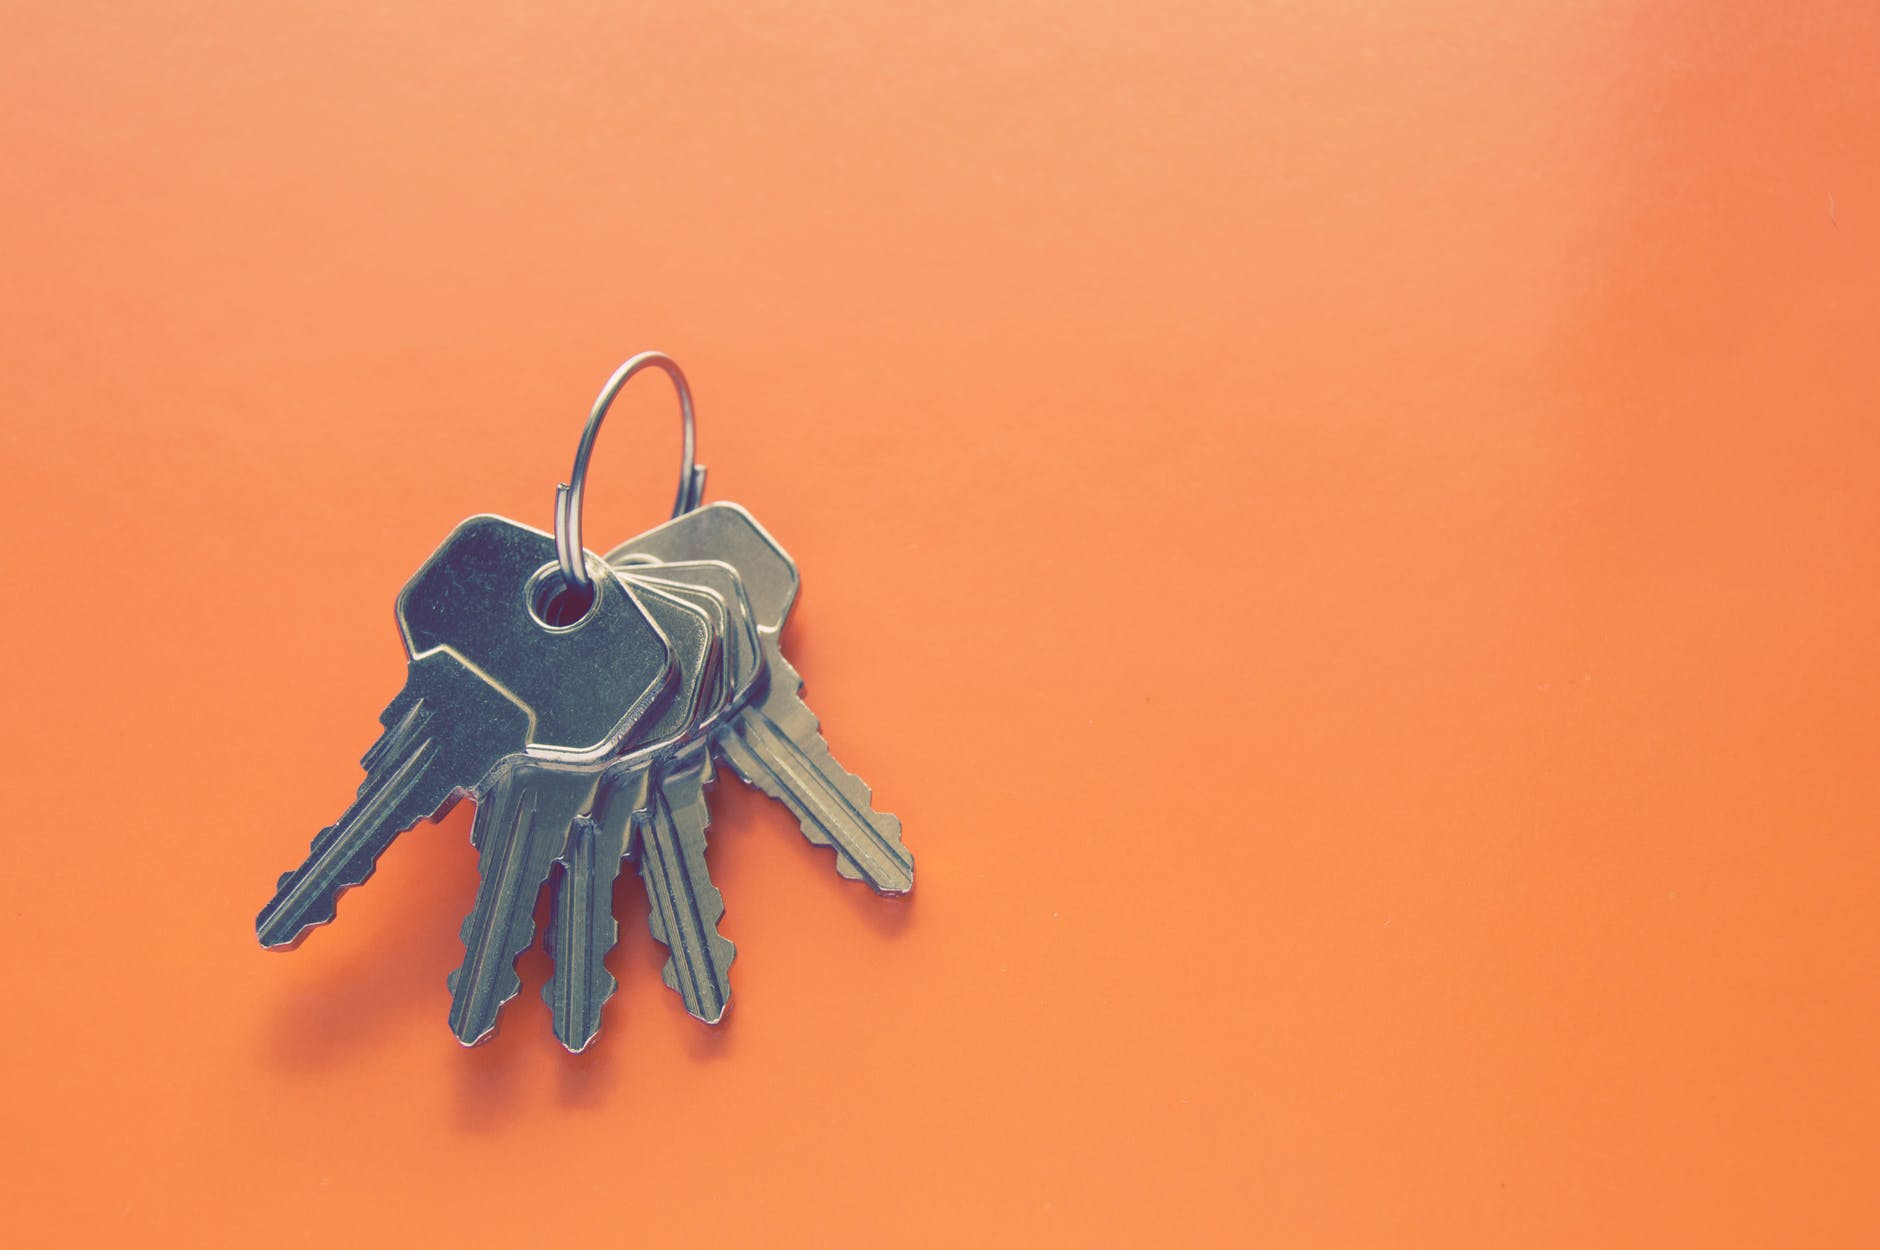 photography of keys on orange surface